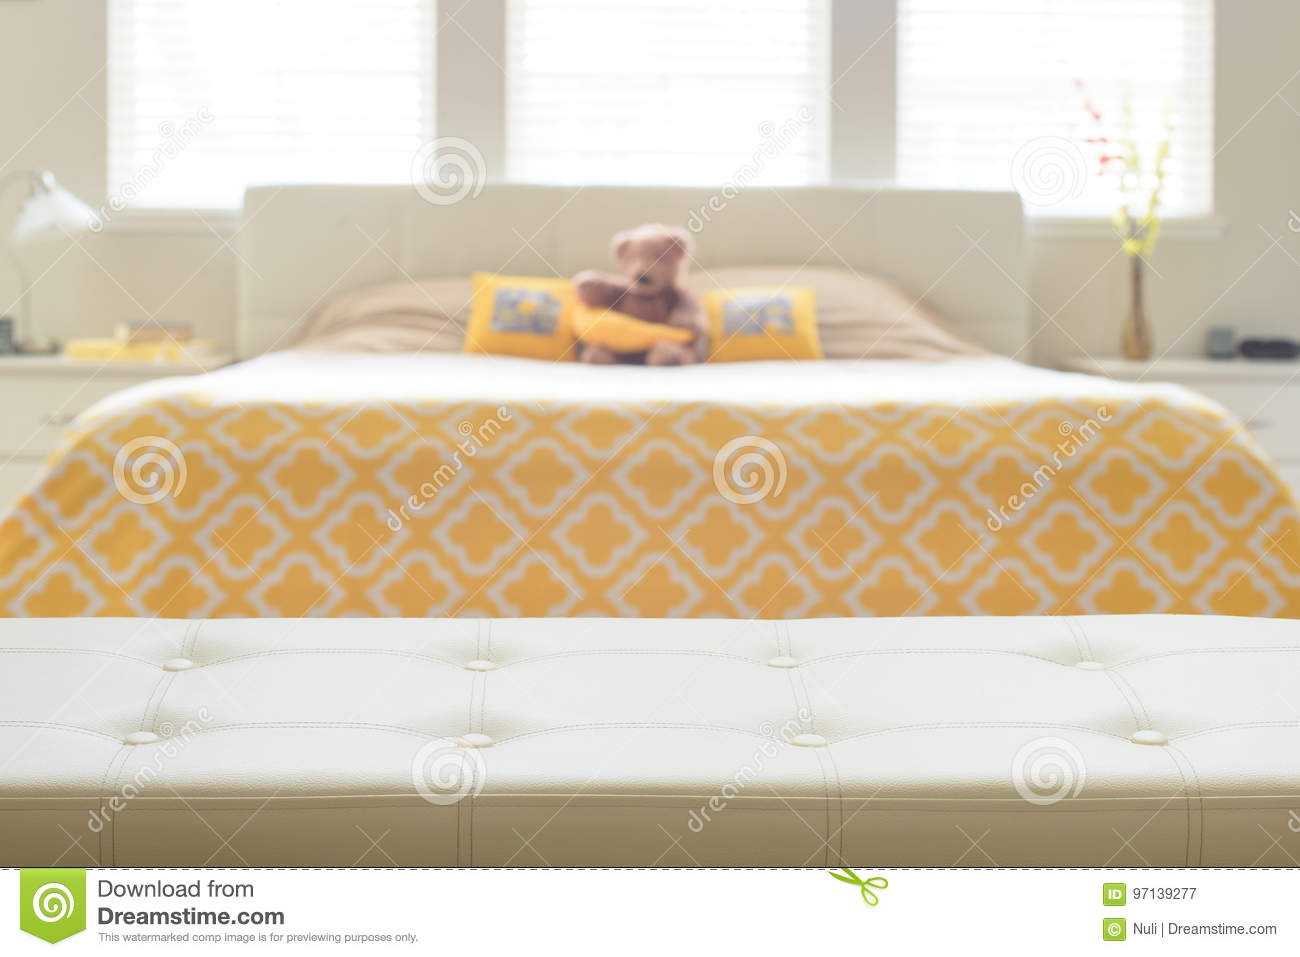 Tremendous Beige Leather Empty Bench In Bedroom Stock Image Image Of Ocoug Best Dining Table And Chair Ideas Images Ocougorg